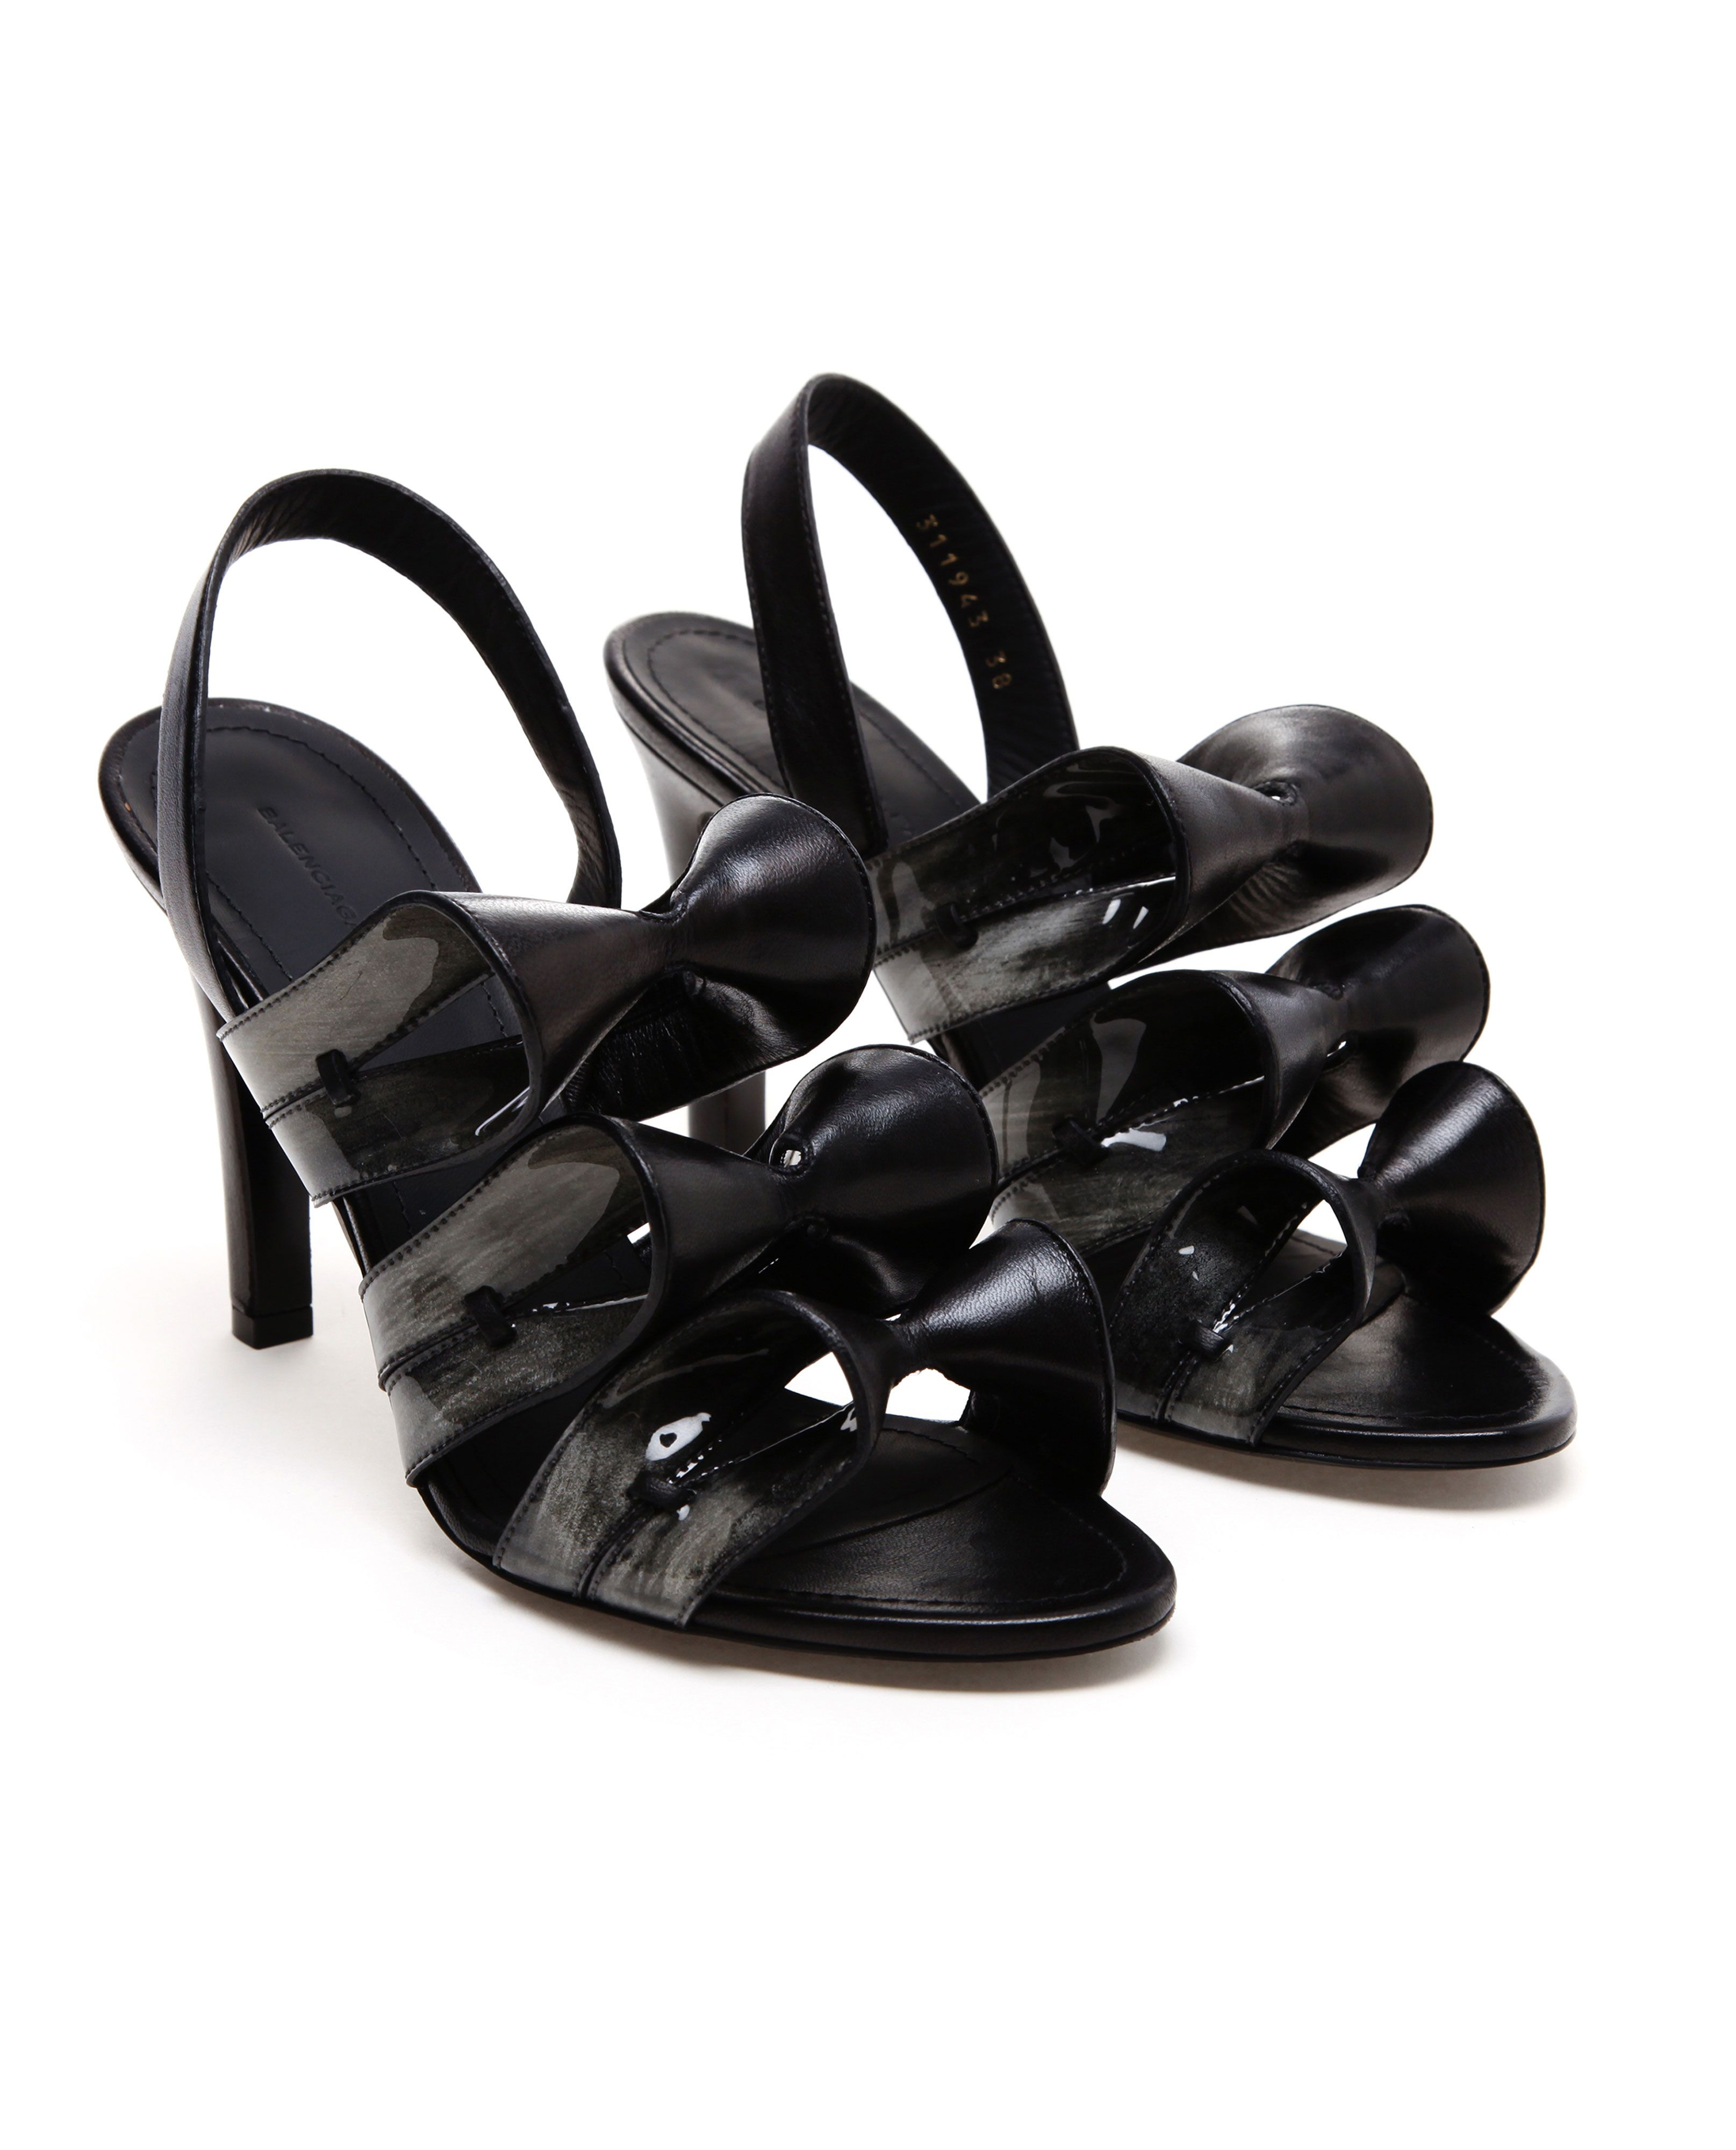 BALENCIAGA Contrasting Leather Bow Sandals